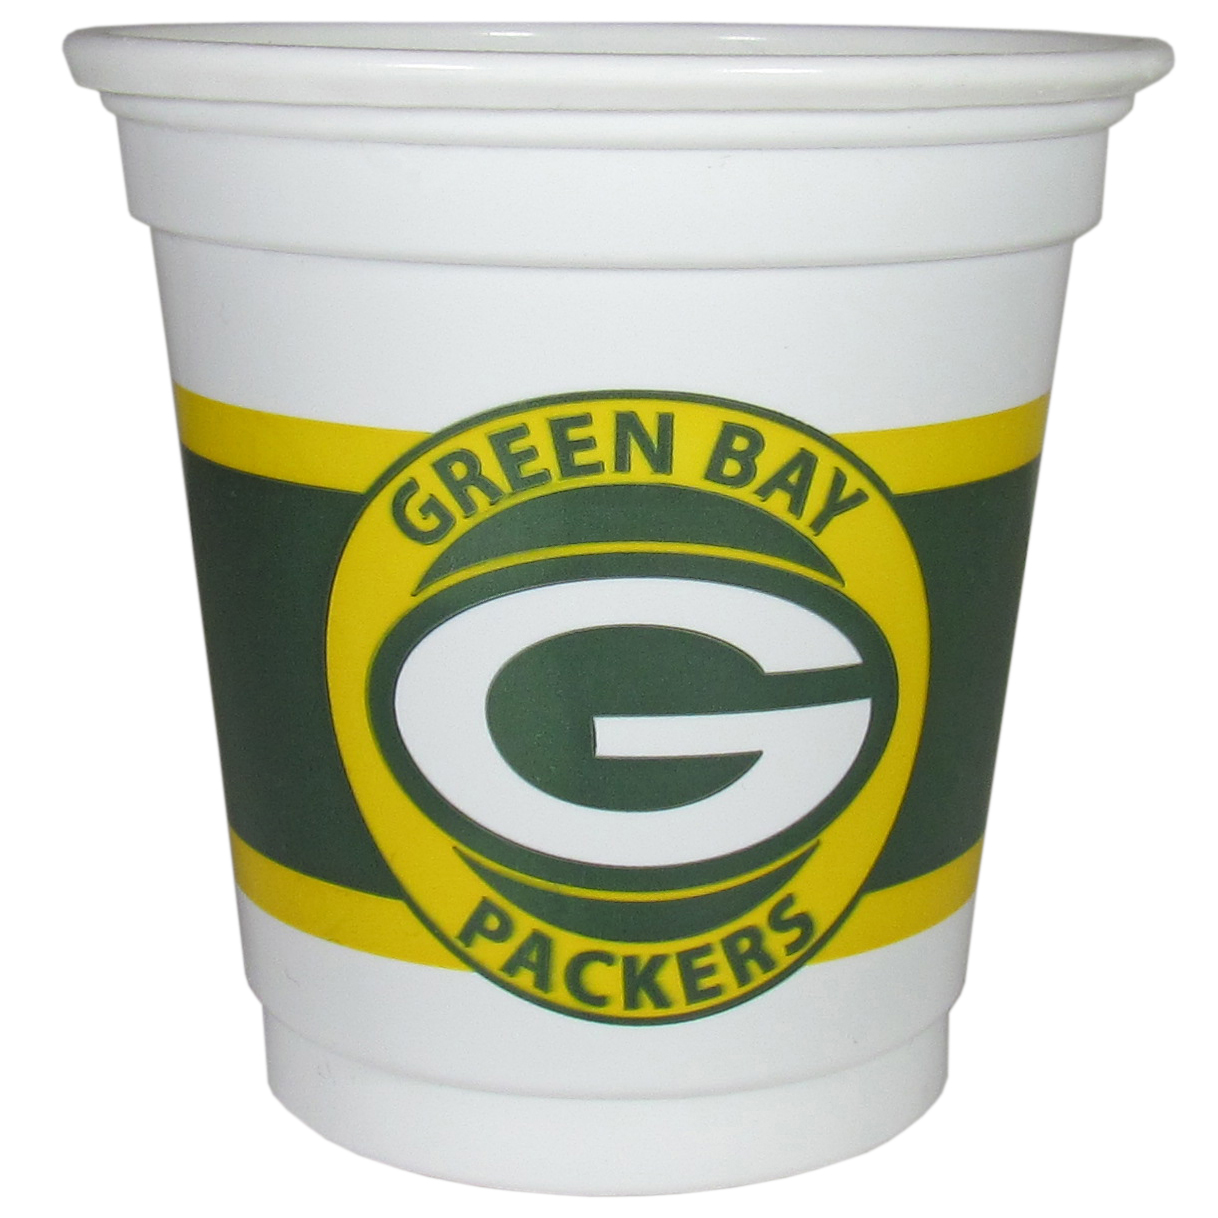 Green Bay Packers 18 Game Day Mini Cups - No better way to show your off your team pride on game day than these Green Bay Packers game day mini cups. The 3 ounce disposable glasses are the perfect addition to your game day party or tailgating BBQ. The cups come in a sleeve of 18 to make sure everyone is sporting true team spirit!